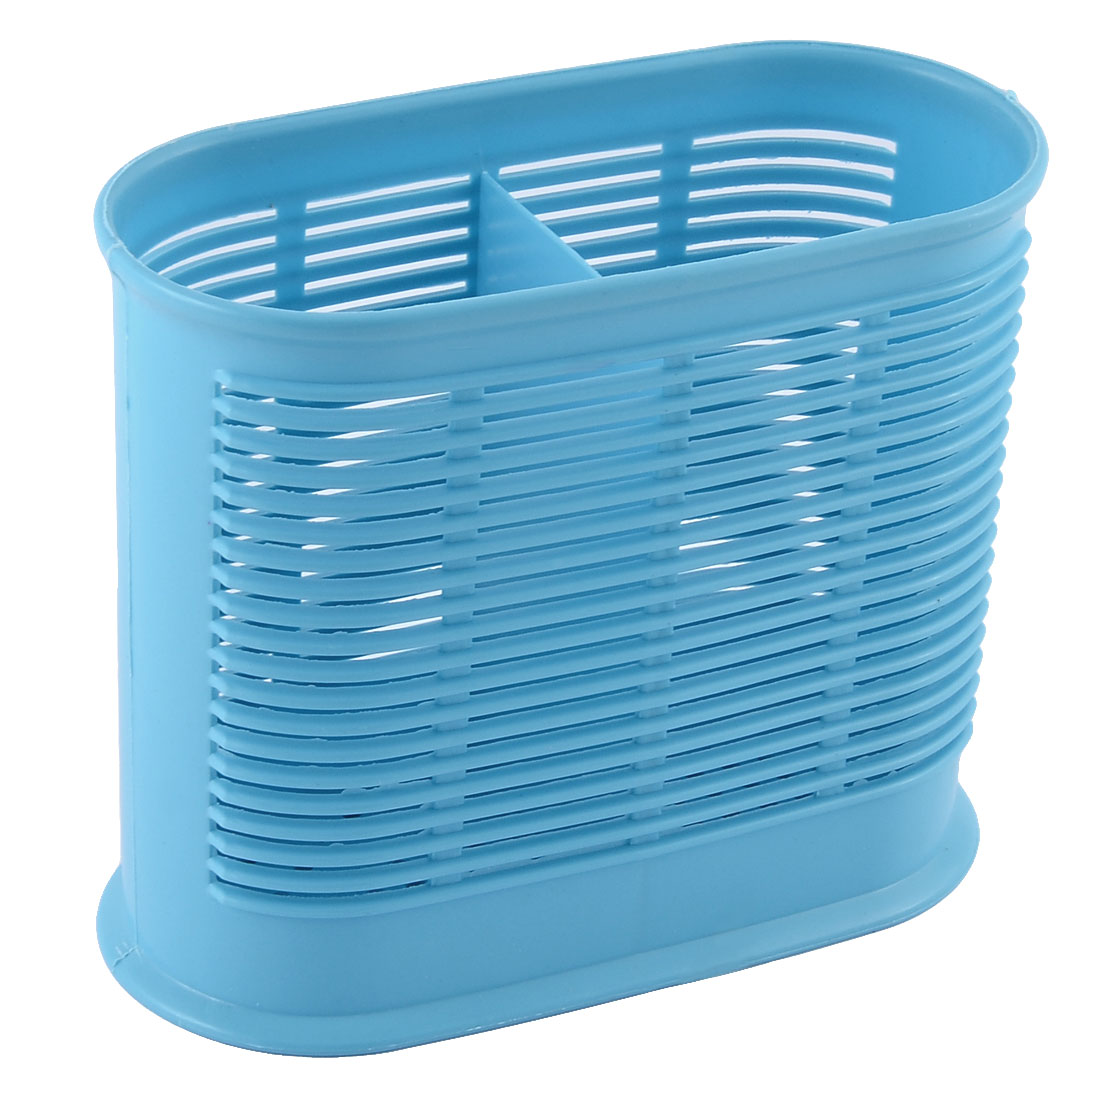 Plastic 2 Compartments Spoon Chopsticks Holder Stand Cage Organizer Blue